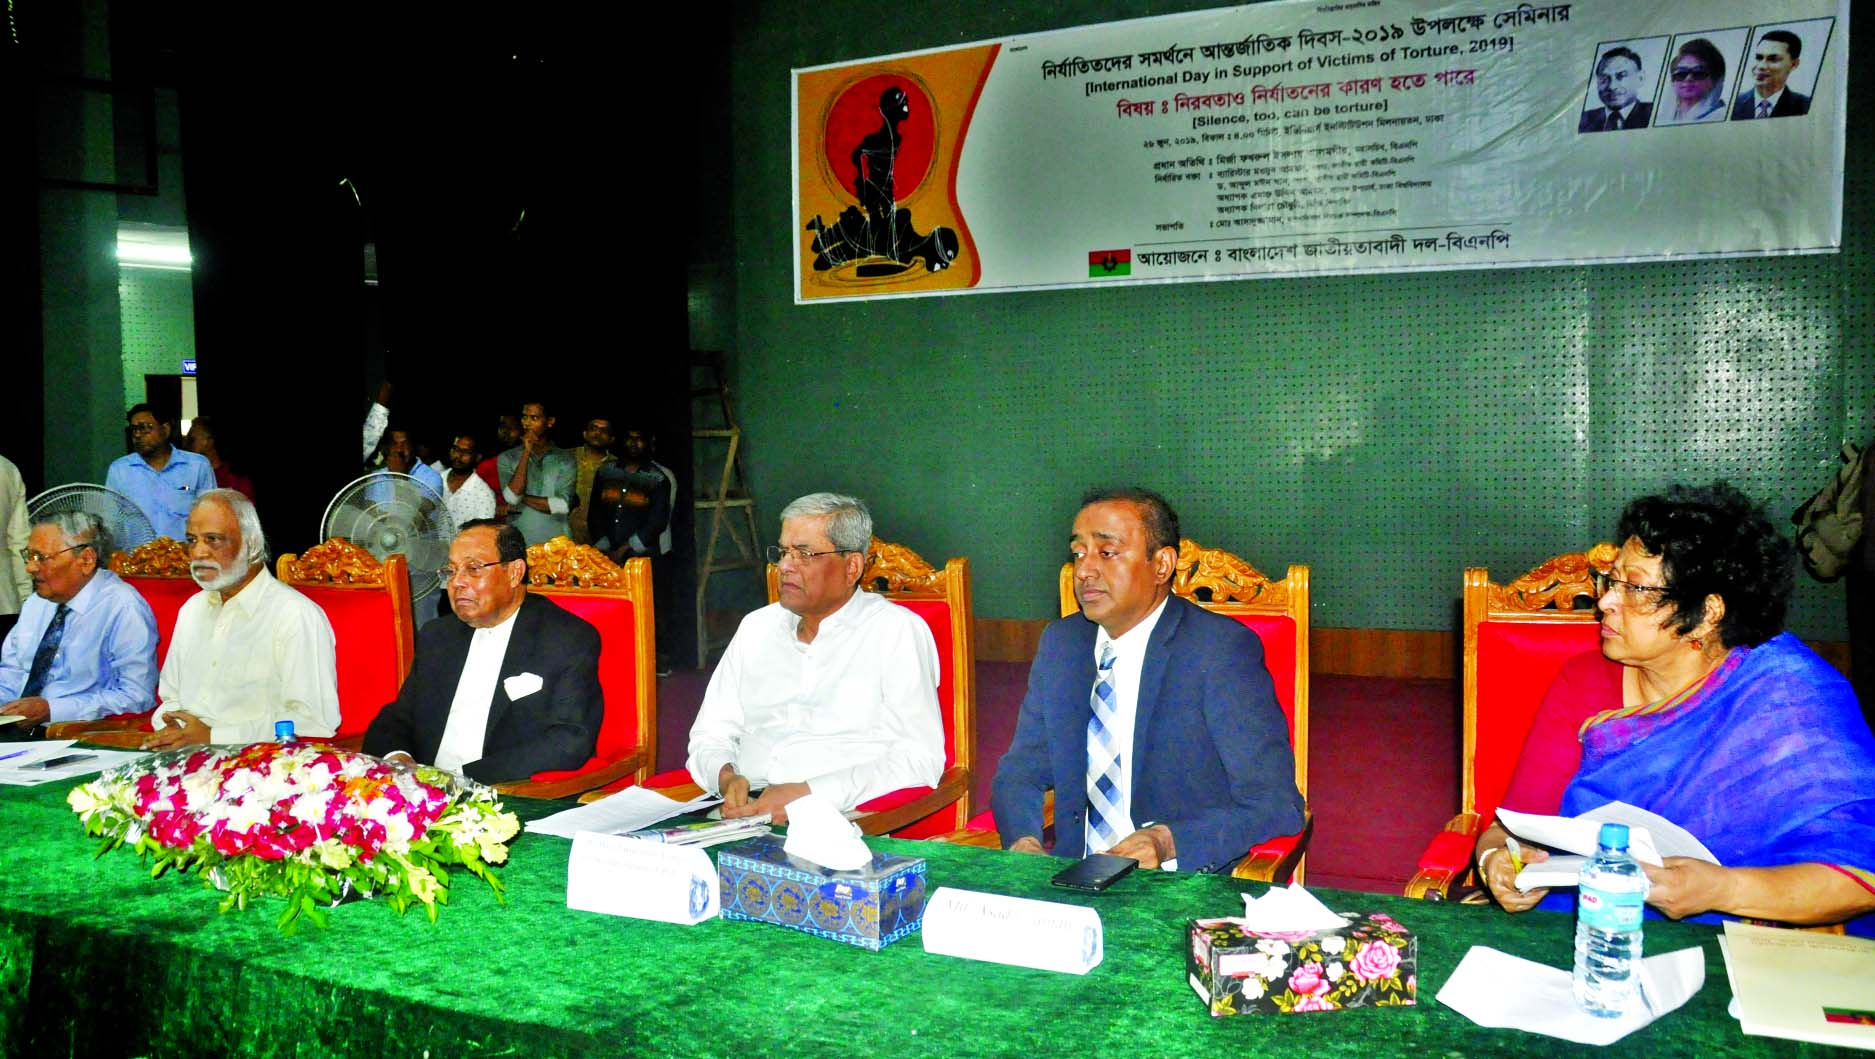 BNP Secretary General Mirza Fakhrul Islam Alamgir along with other party leaders attending the seminar organised by the party marking the International Day 2019 of Oppressors held at the Engineers' Institute of Bangladesh on Wednesday.